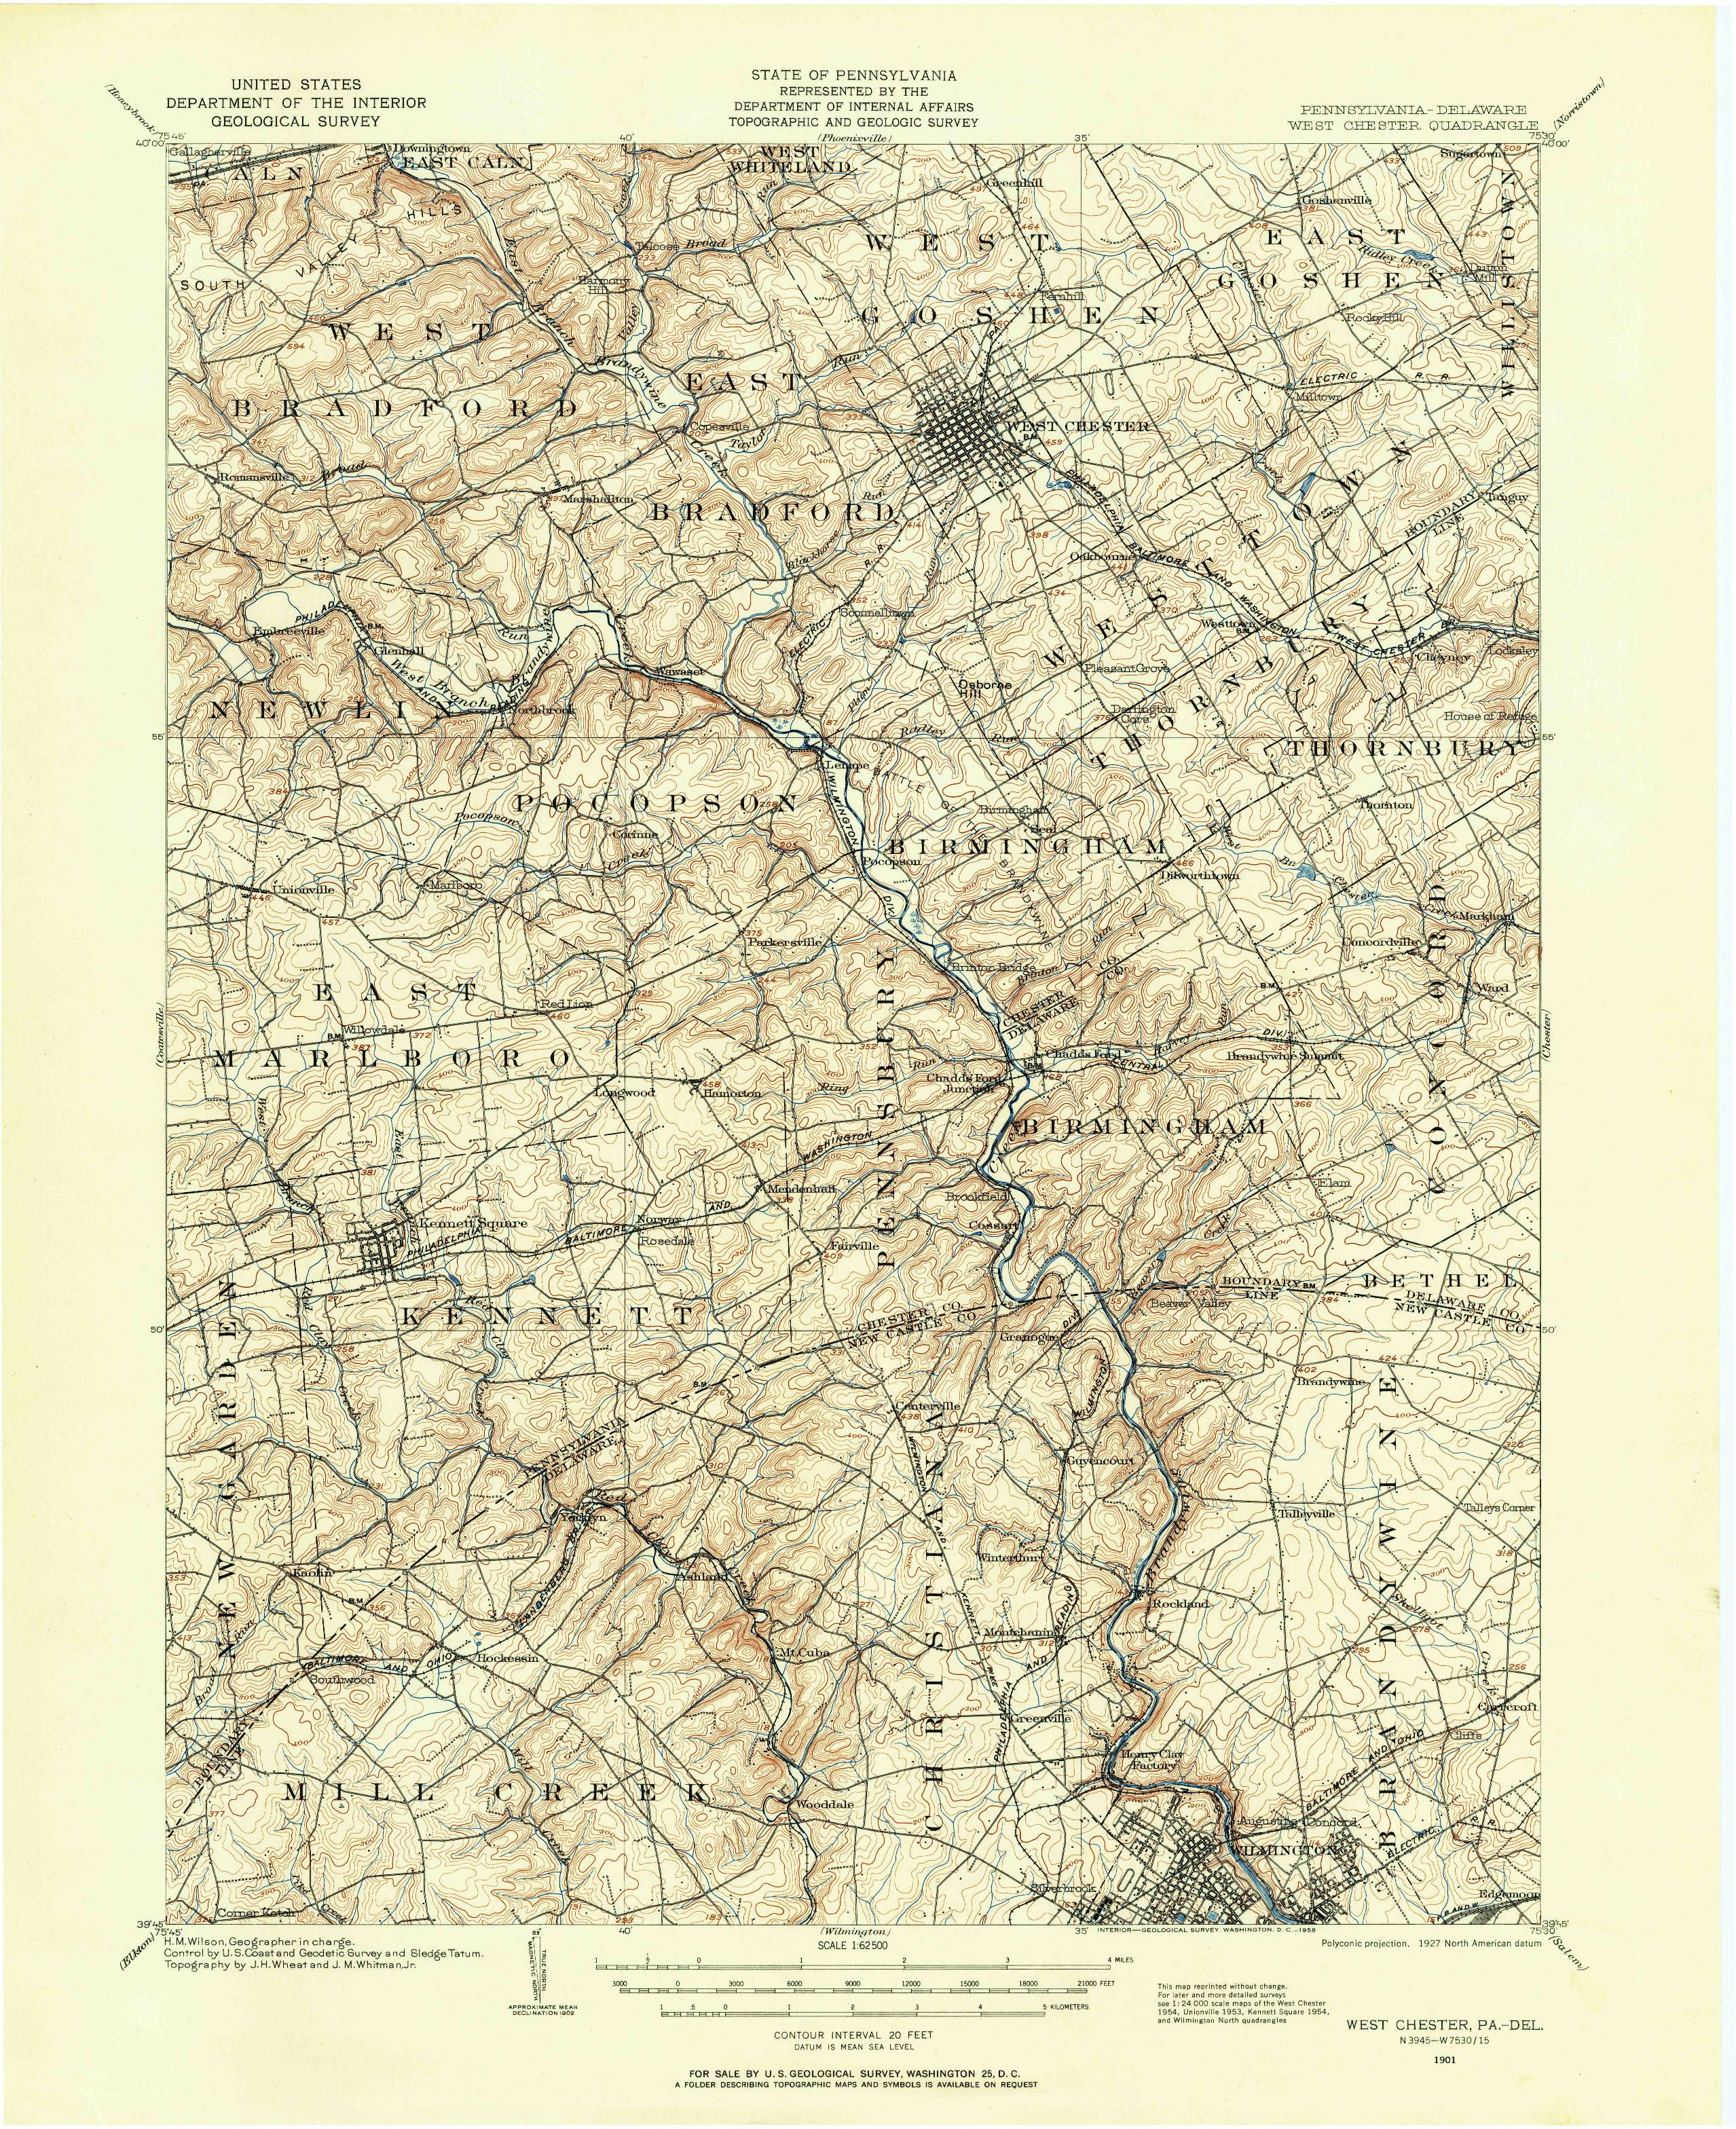 West Chester Pa 1901 Map From The Usgs Historical Topographic Map